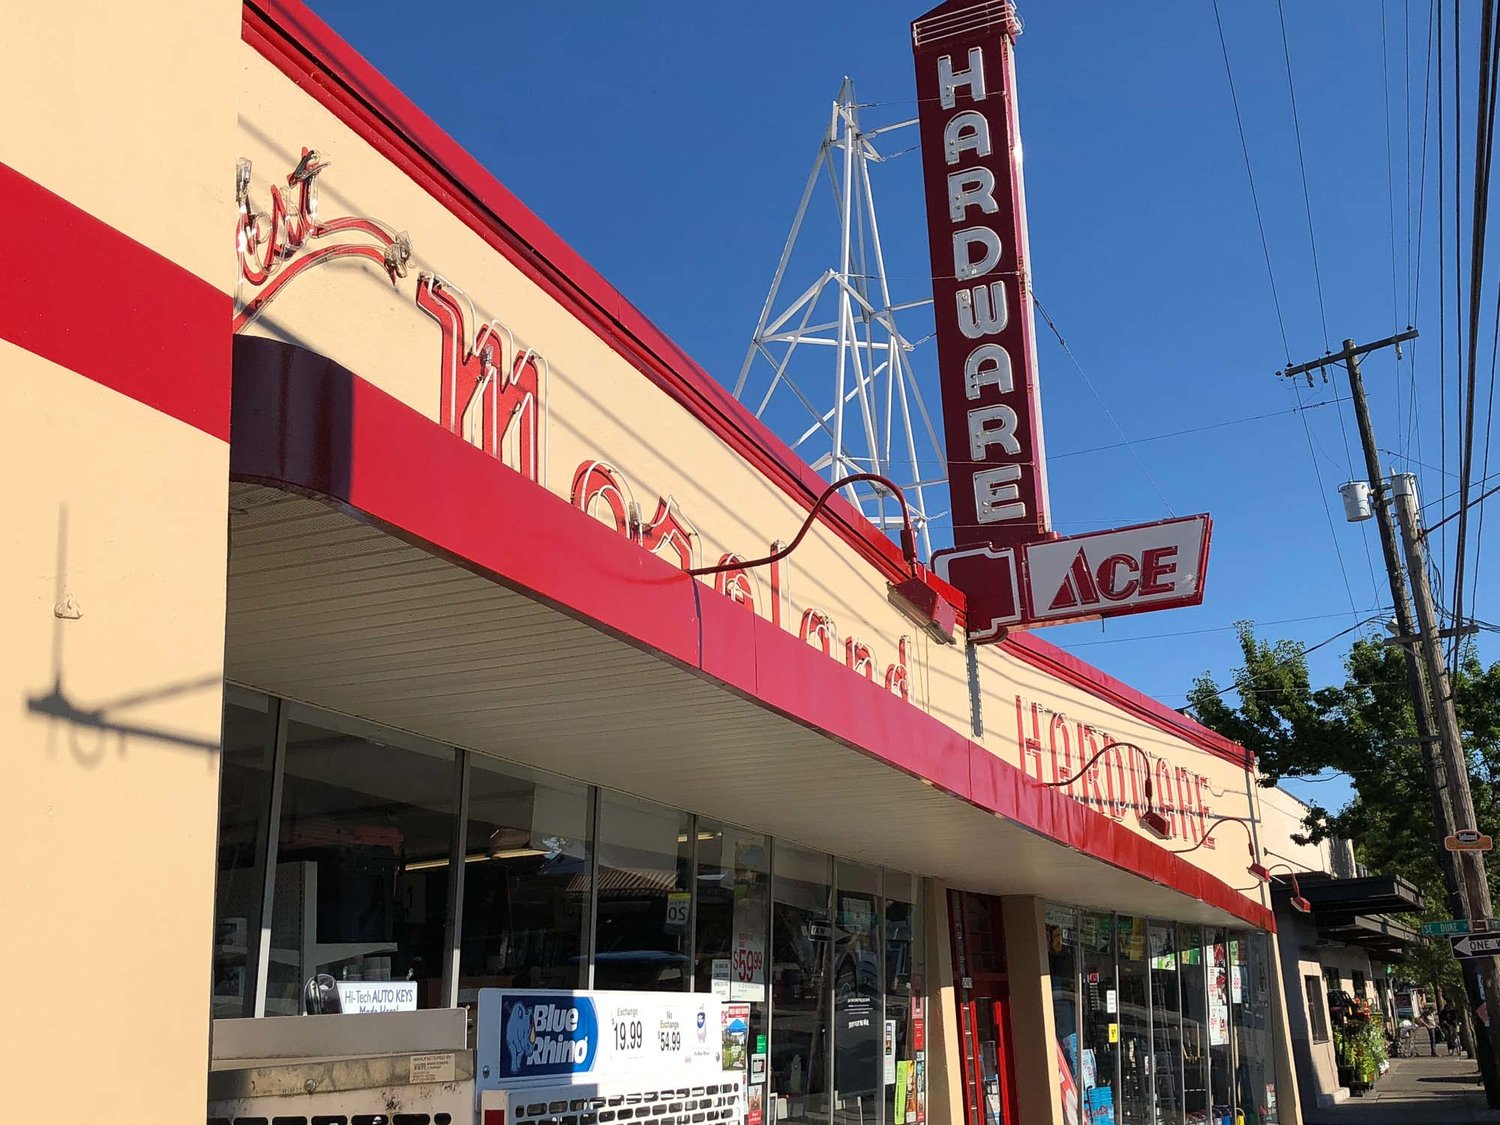 Westmoreland ACE Hardware — Sellwood Moreland Business Alliance